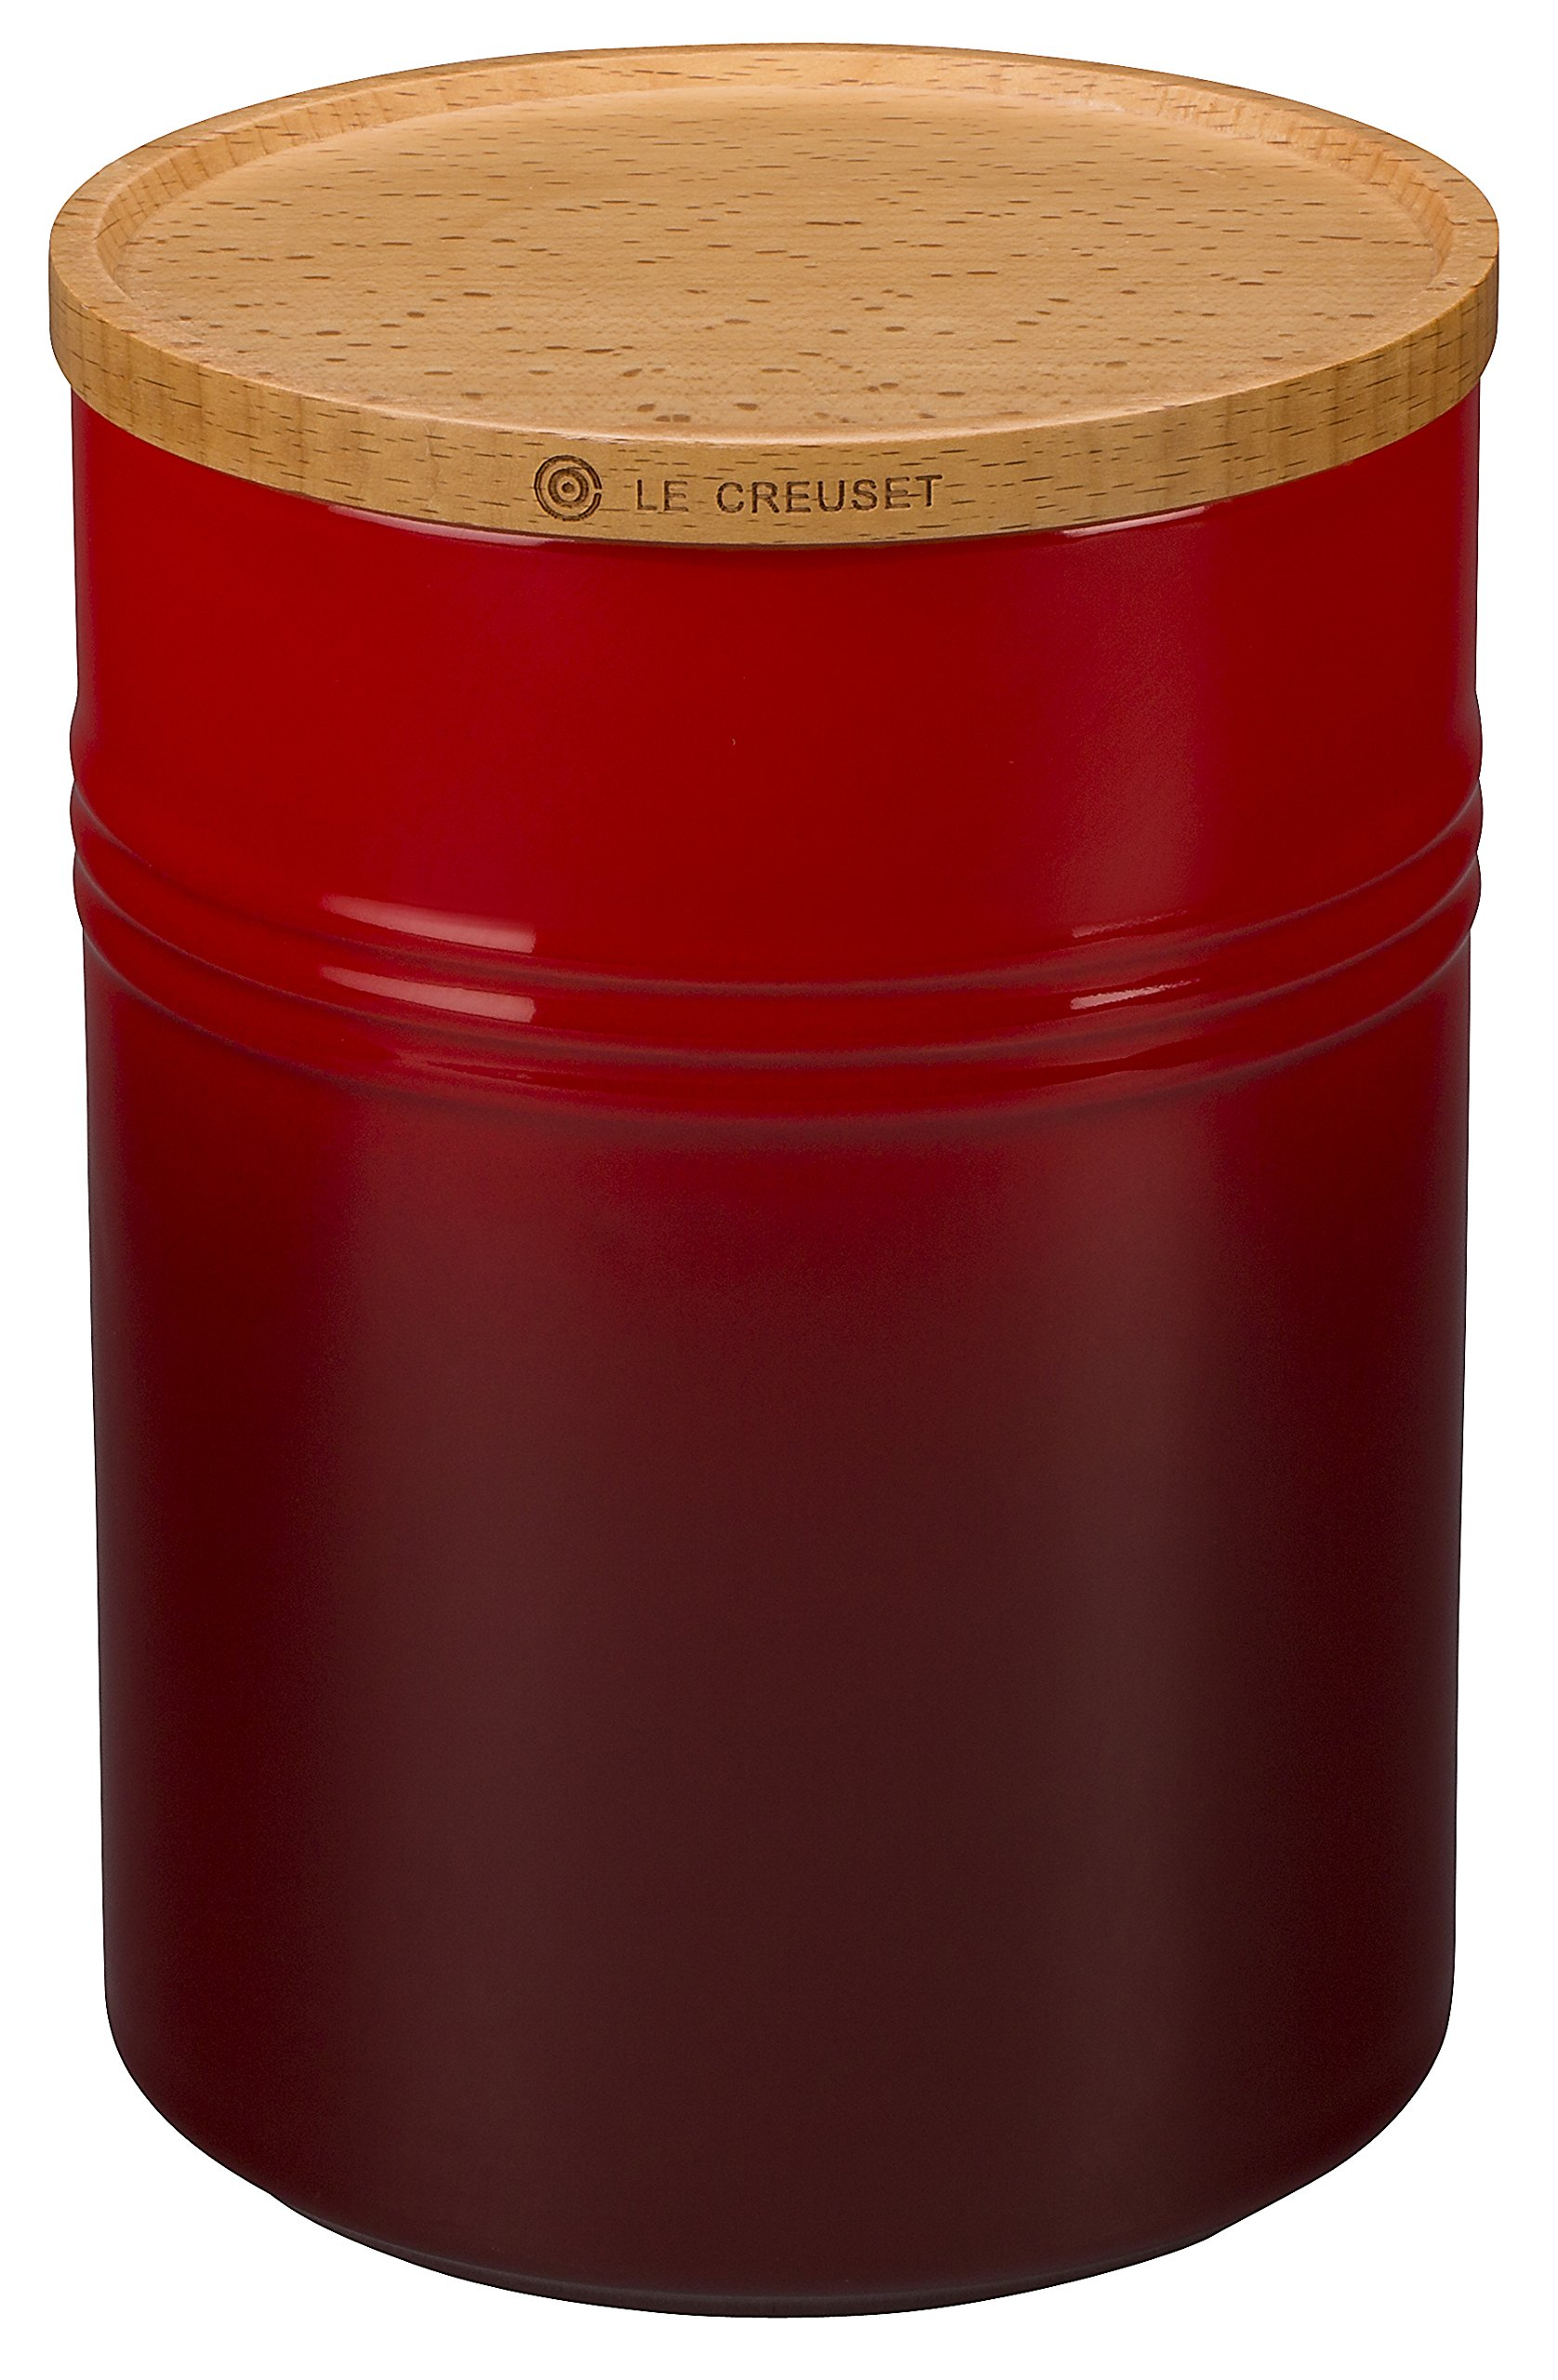 Le Creuset Stoneware 4'' Canister with Wood Lid, 22 oz, Cerise (Cherry Red) by Le Creuset (Image #1)